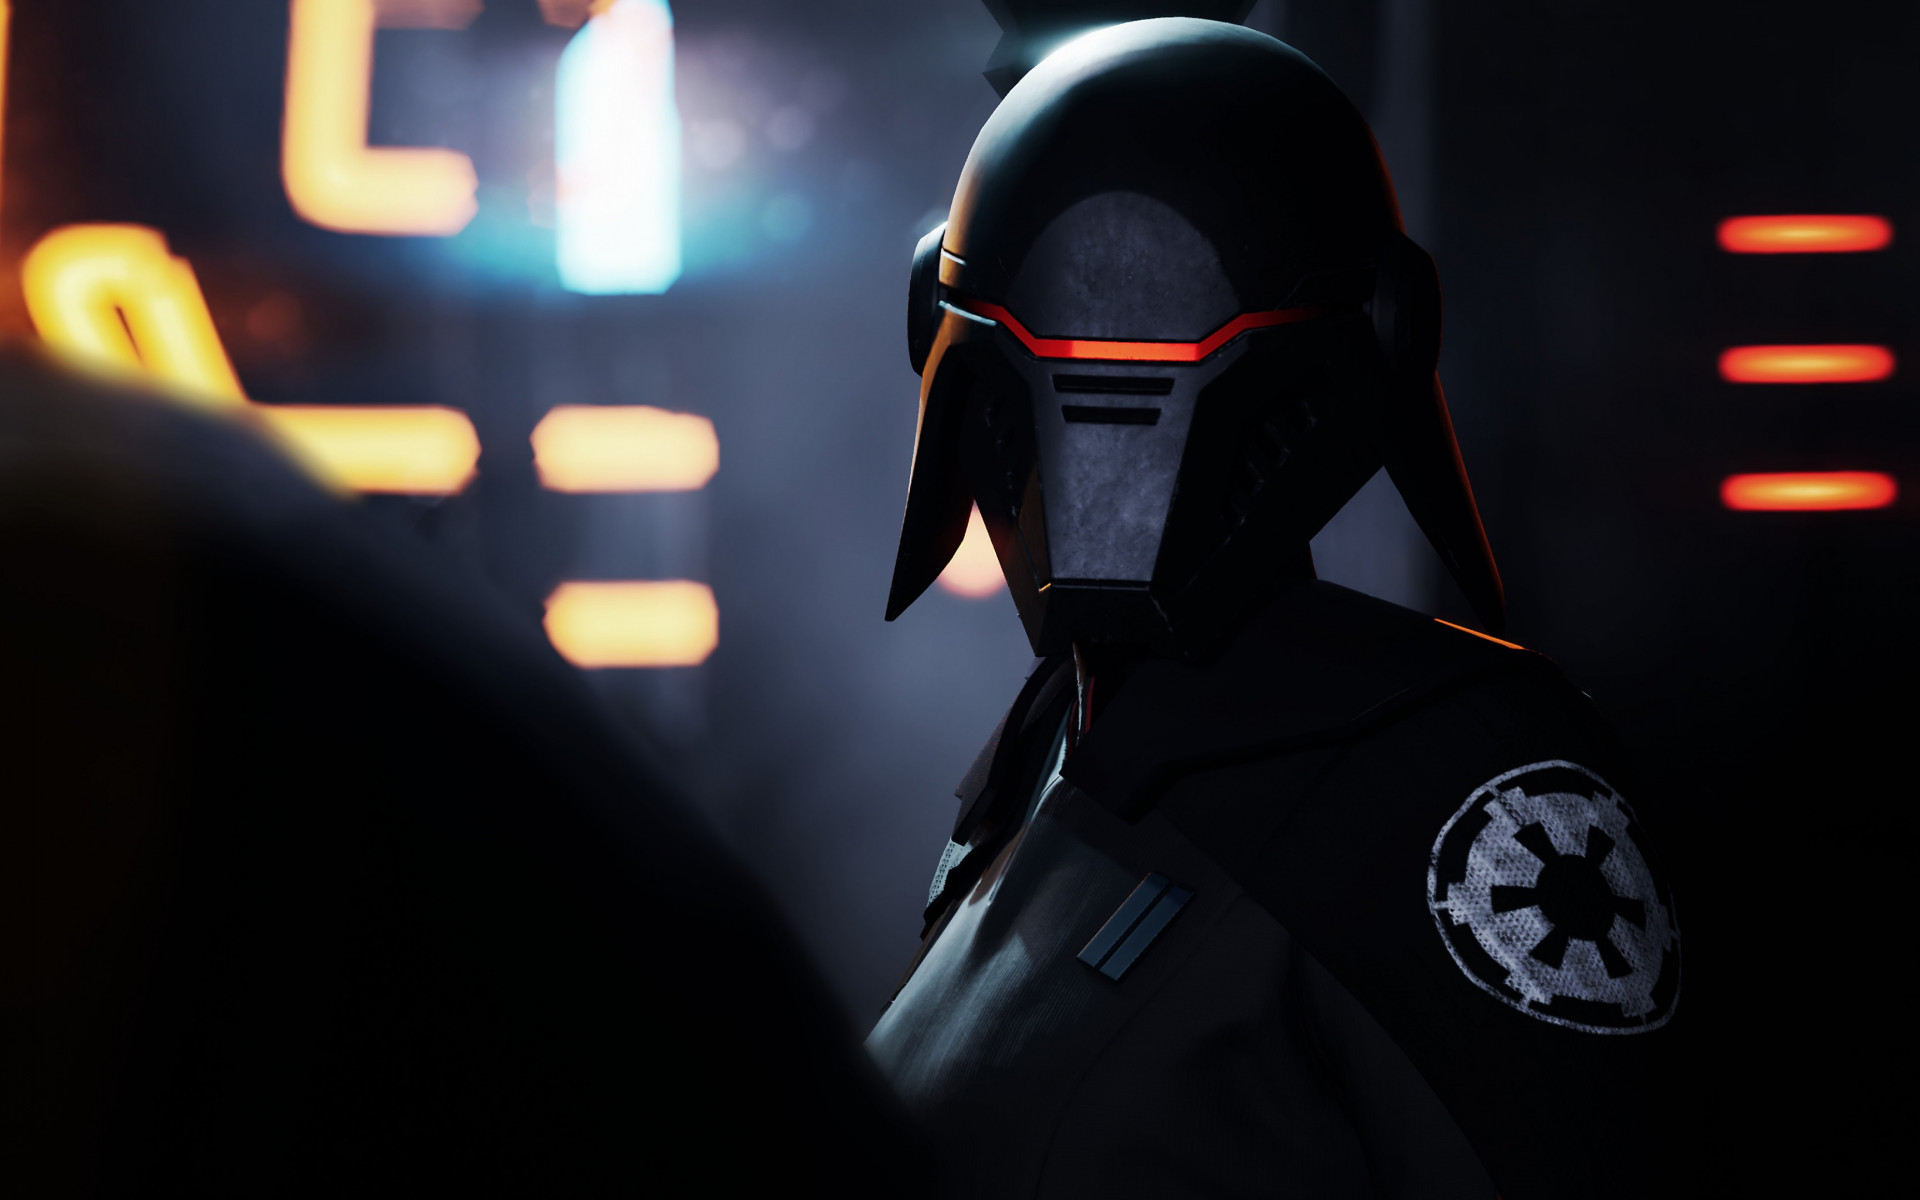 Star Wars Jedi: Fallen Order soldier wallpaper 1920x1200